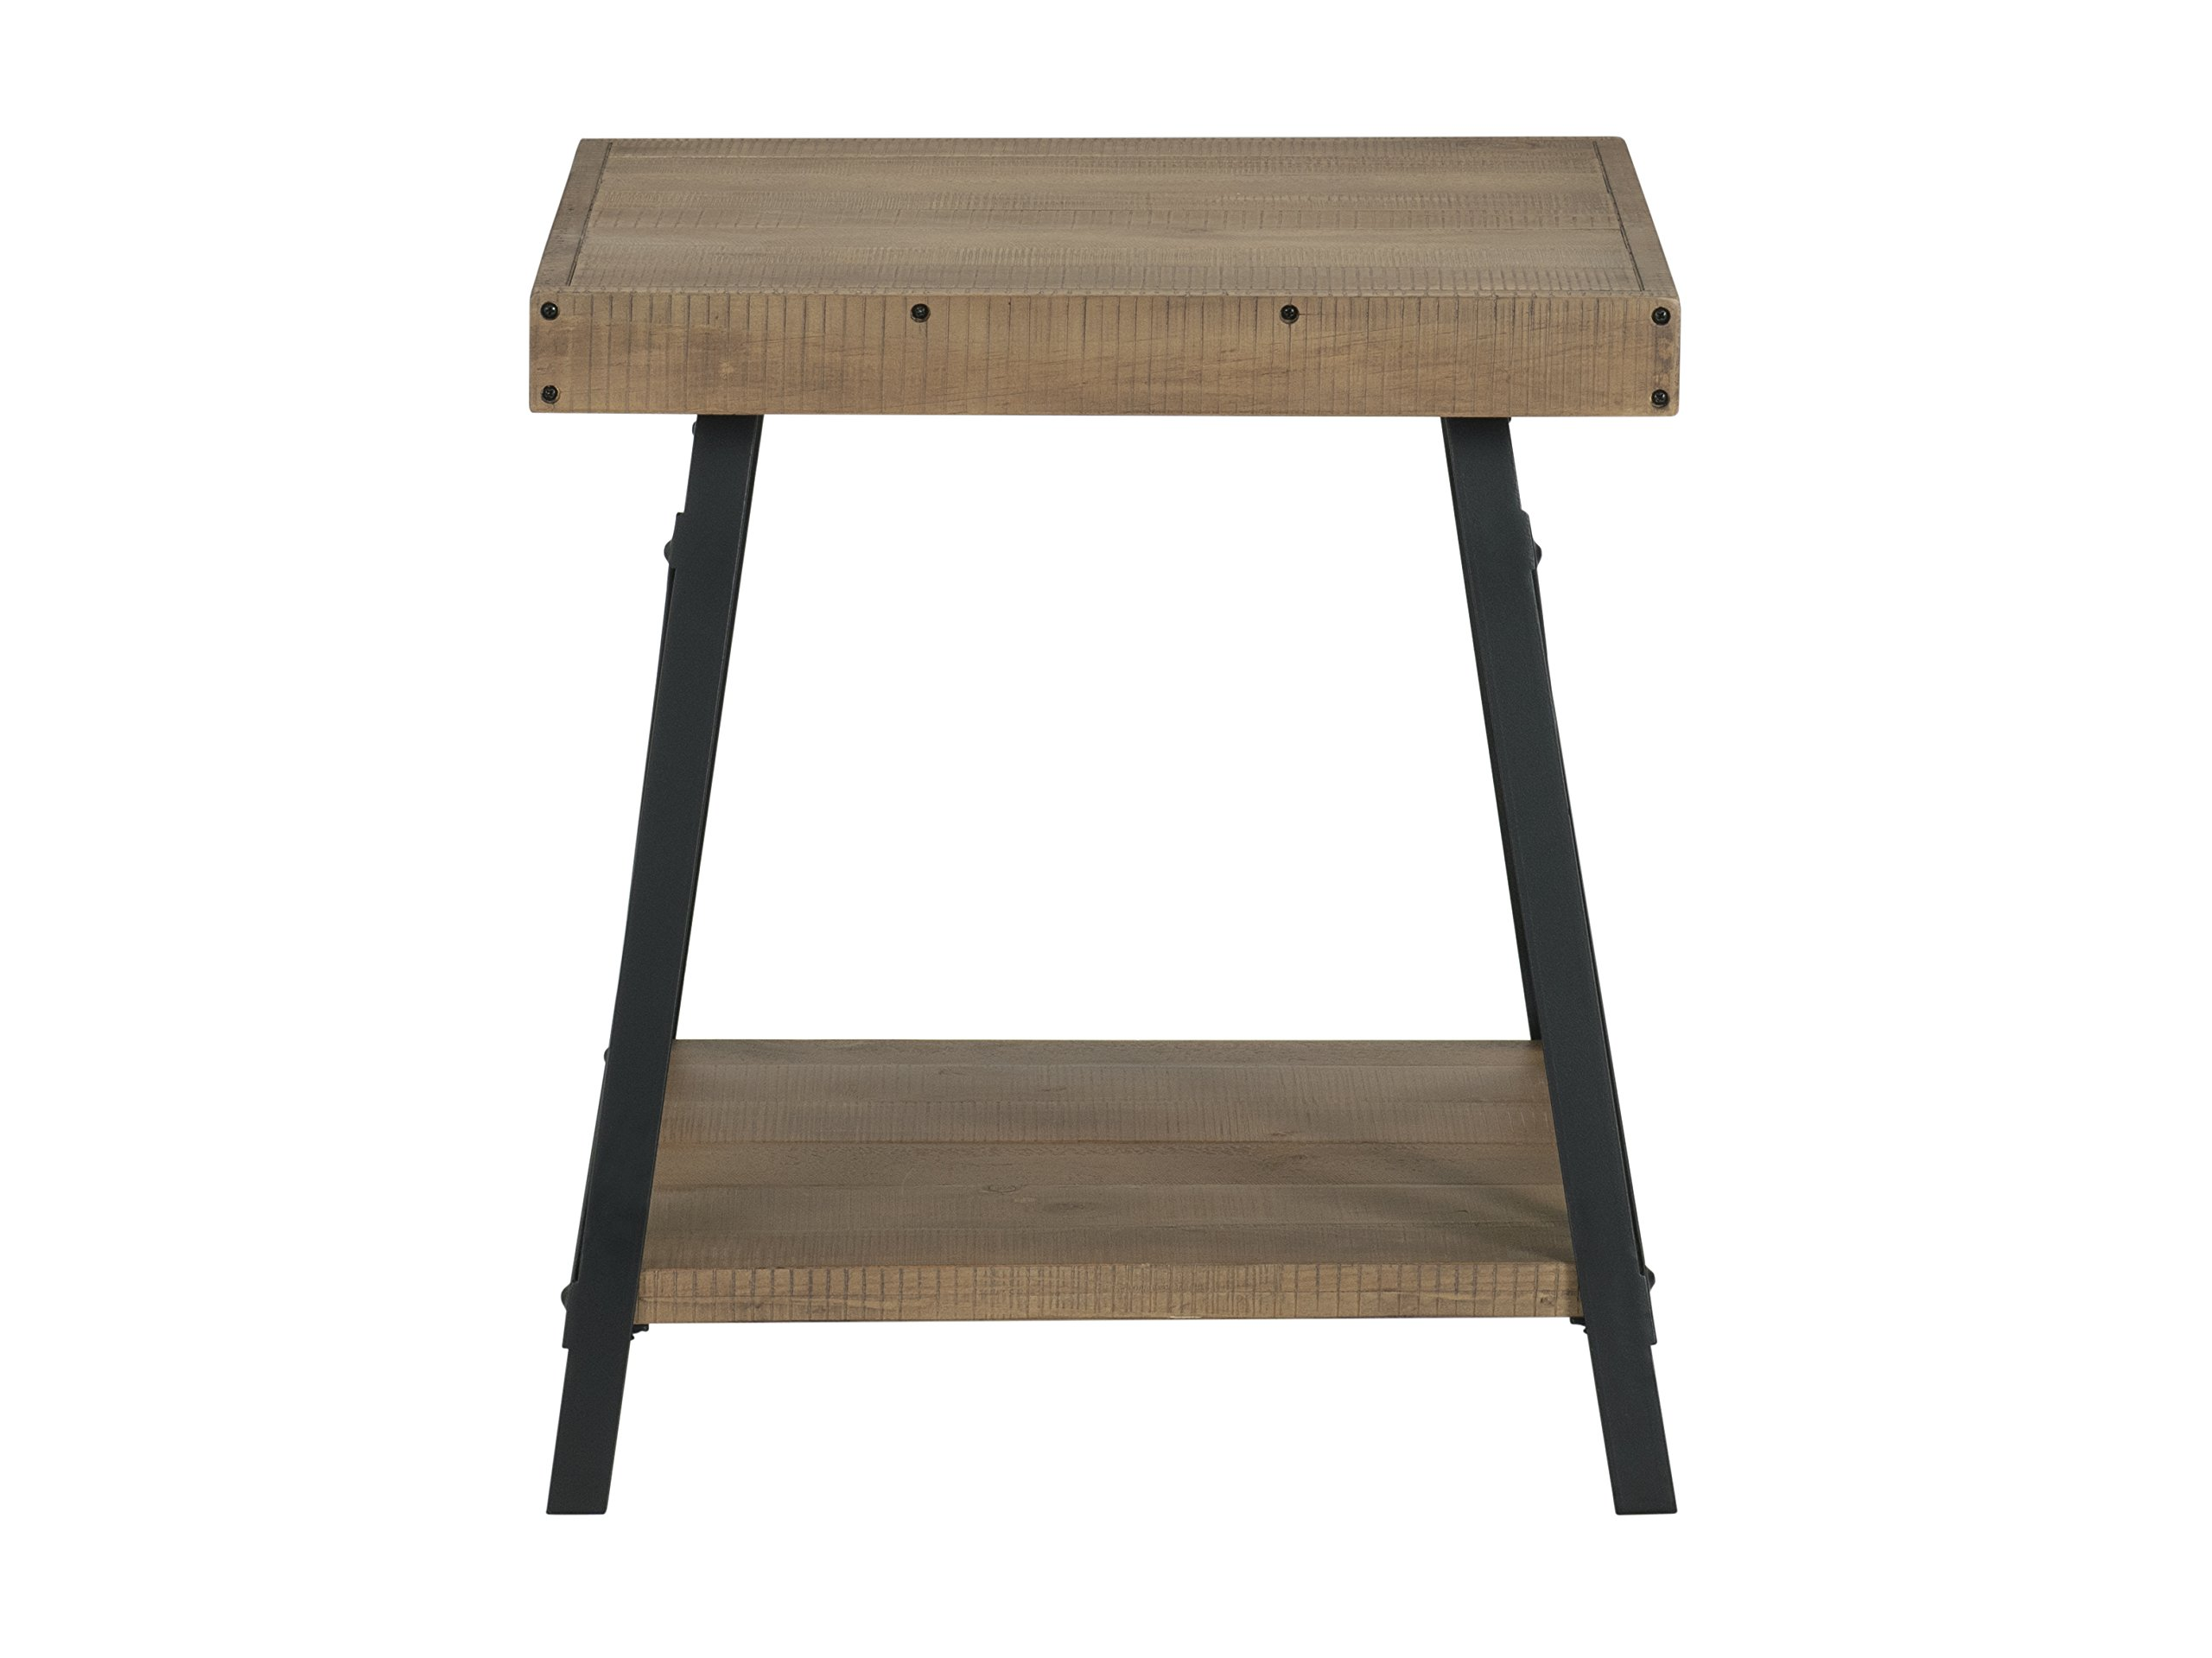 """Martin Svensson Home Xavier End Table, Reclaimed Natural - Finish: Reclaimed Natural - reminiscent of Reclaimed wood found in an old barn or warehouse Crafted from solid wood - New Zealand pine with rough hewn saw marks Exposed rivets across the Top and Black Steel metal """"x"""" cross on the end caps give it a distinct industrial and rustic look - living-room-furniture, living-room, end-tables - 71FTg SAVIL -"""